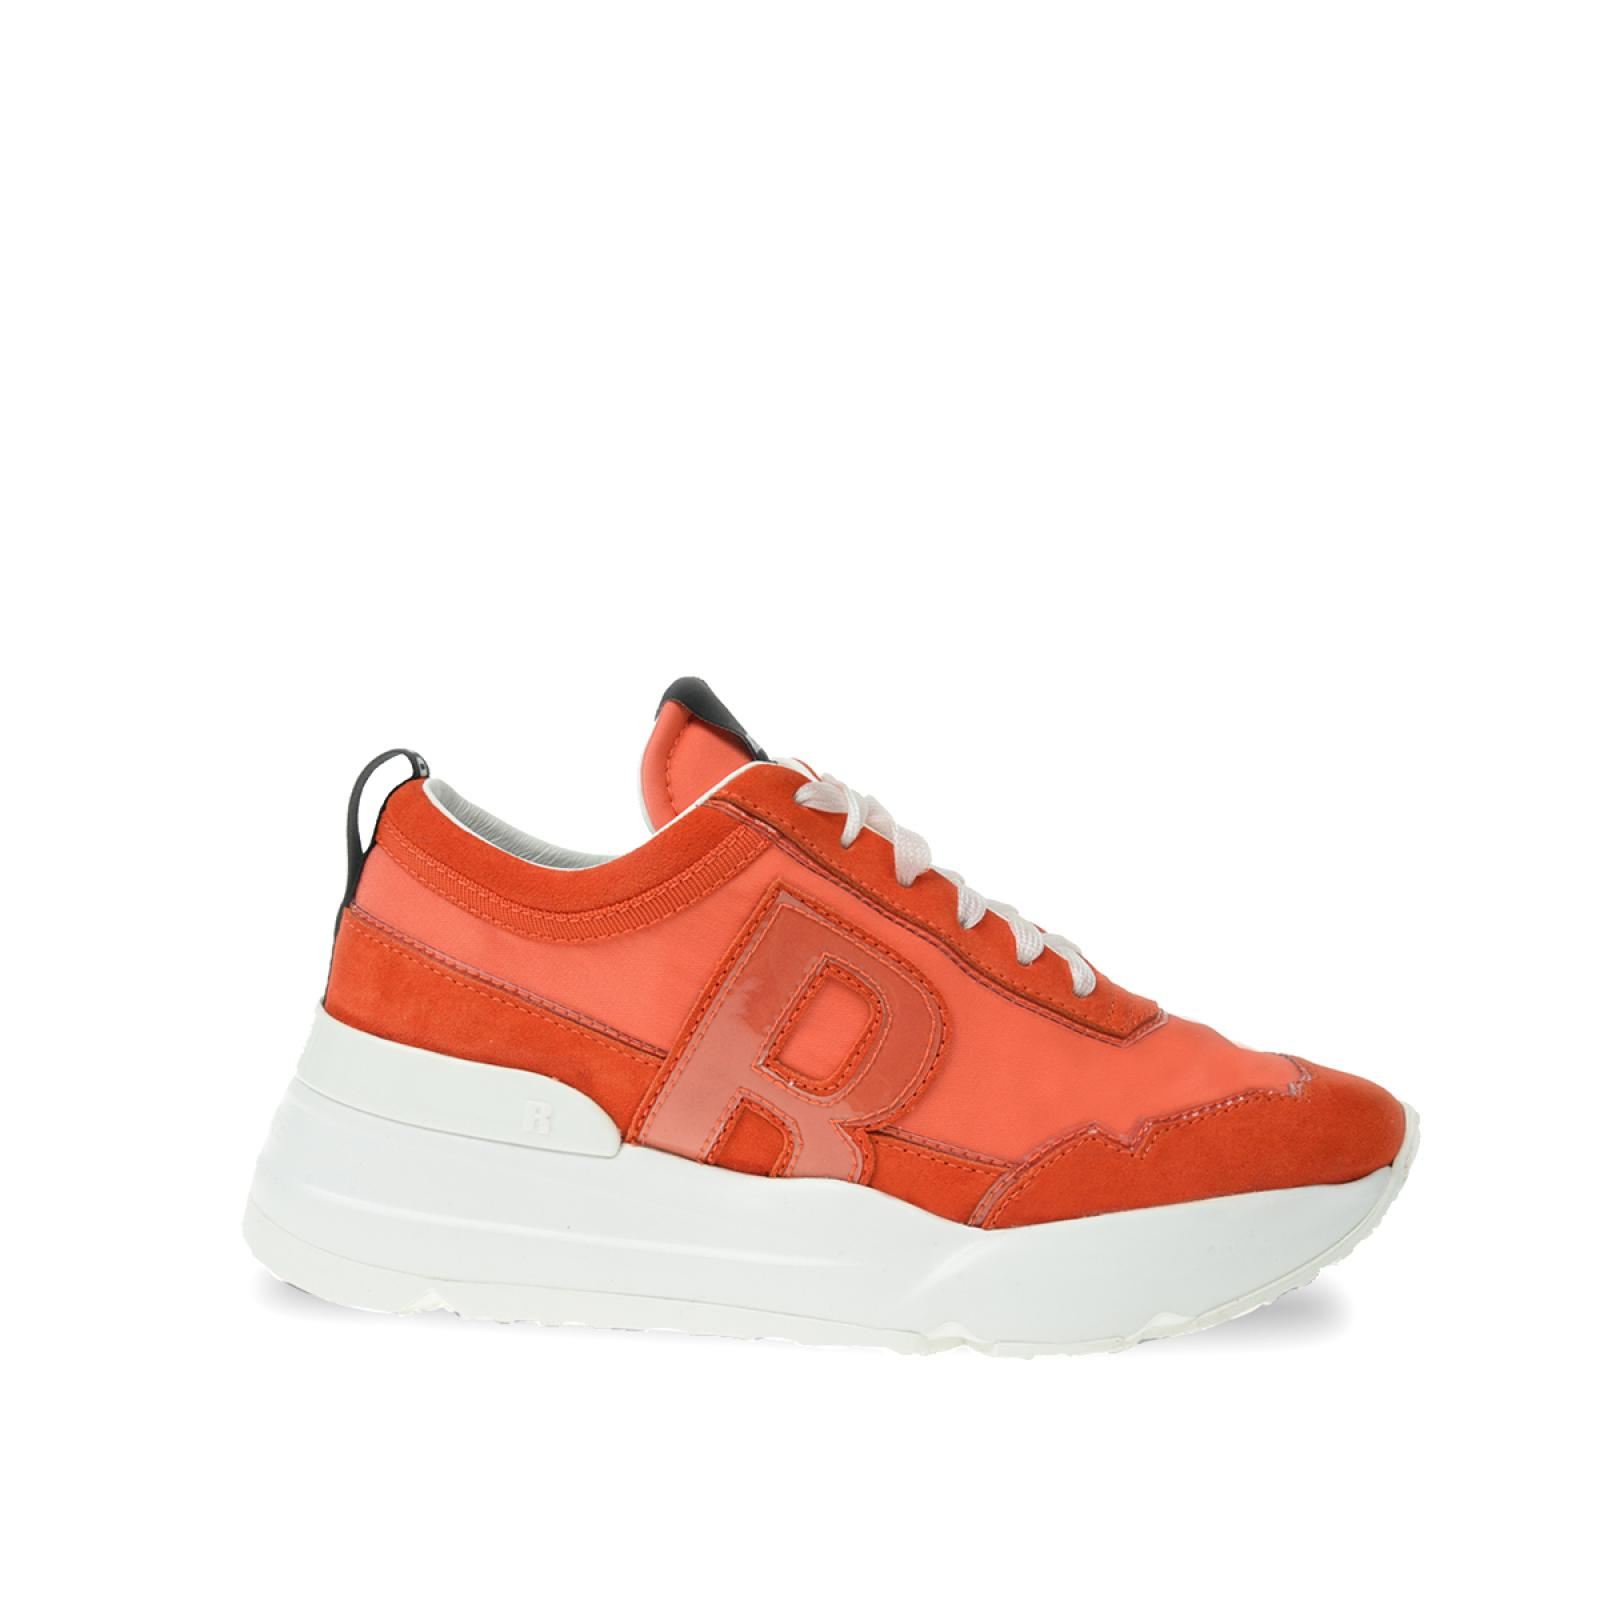 RUCO Sneakers R-Evolve 4041 Ultra Naycer - 1